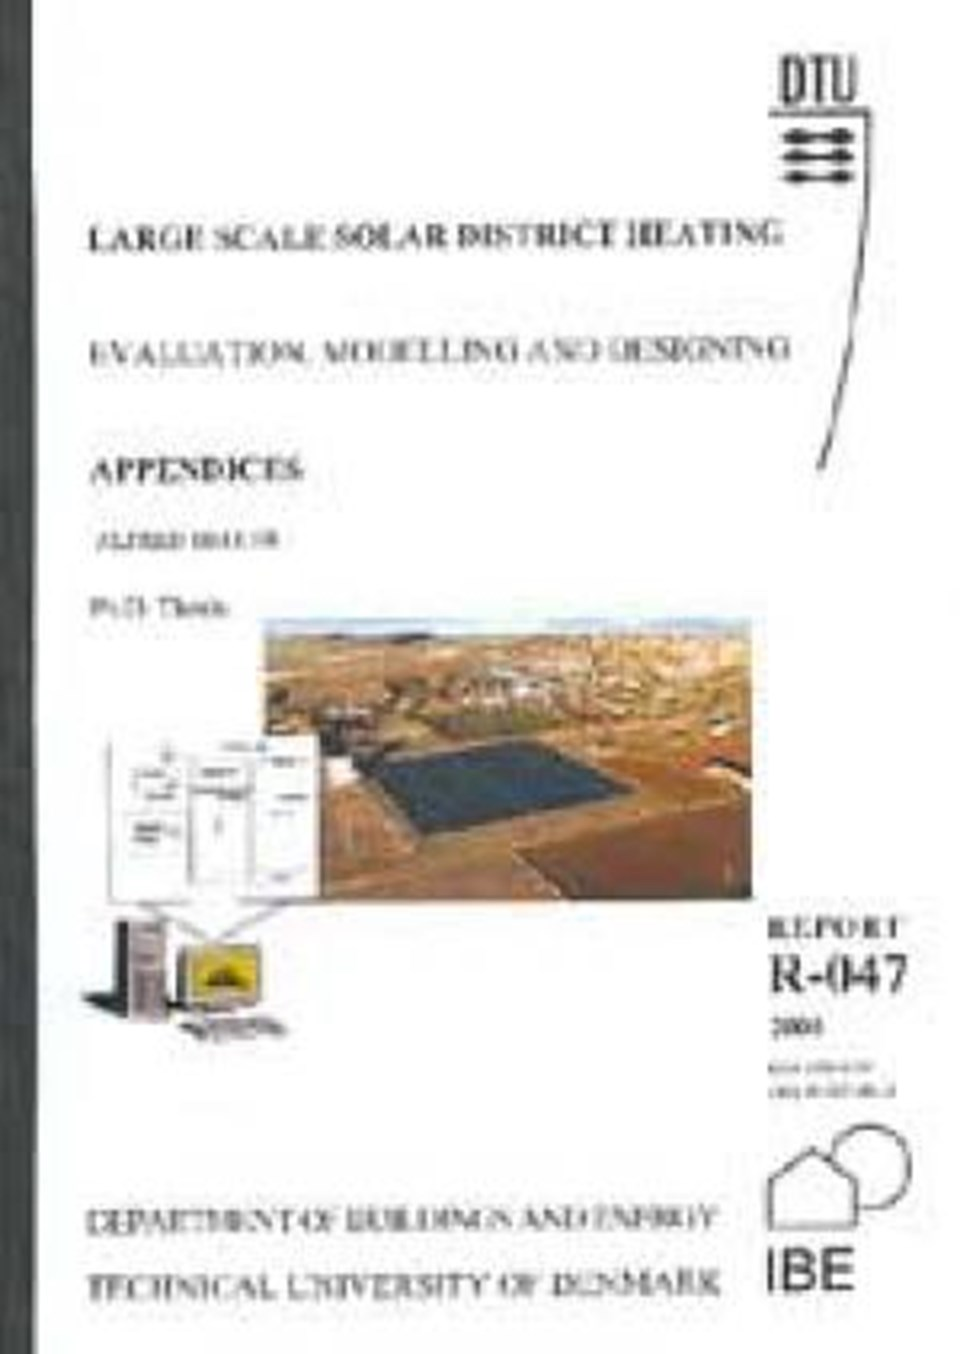 Large Scale Solar District Heating. Evaluation, Mo